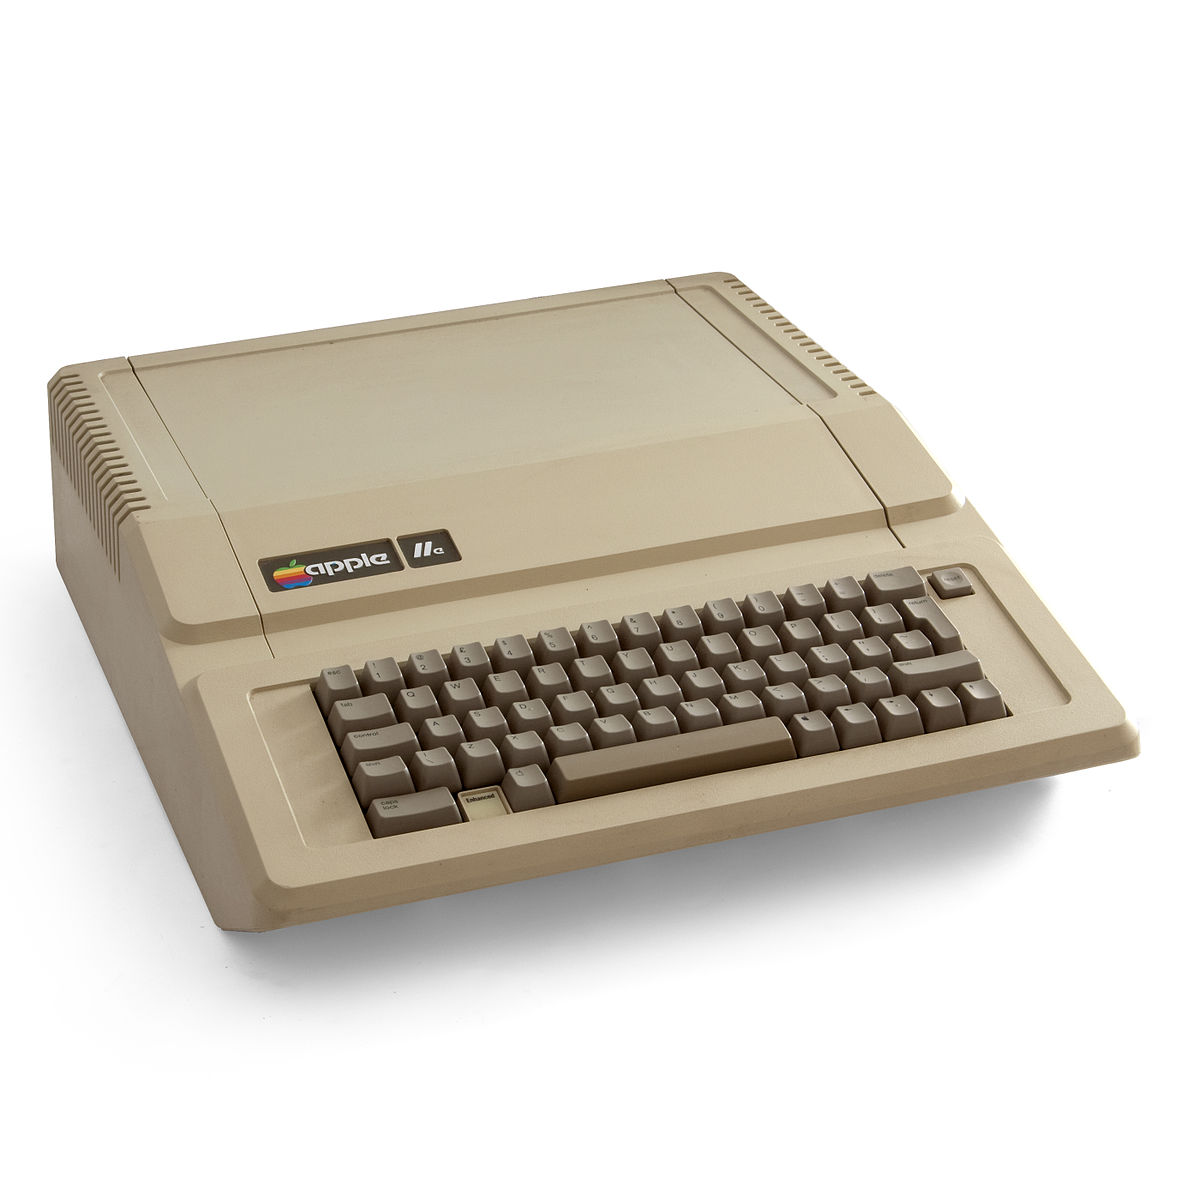 apple iie wikipedia